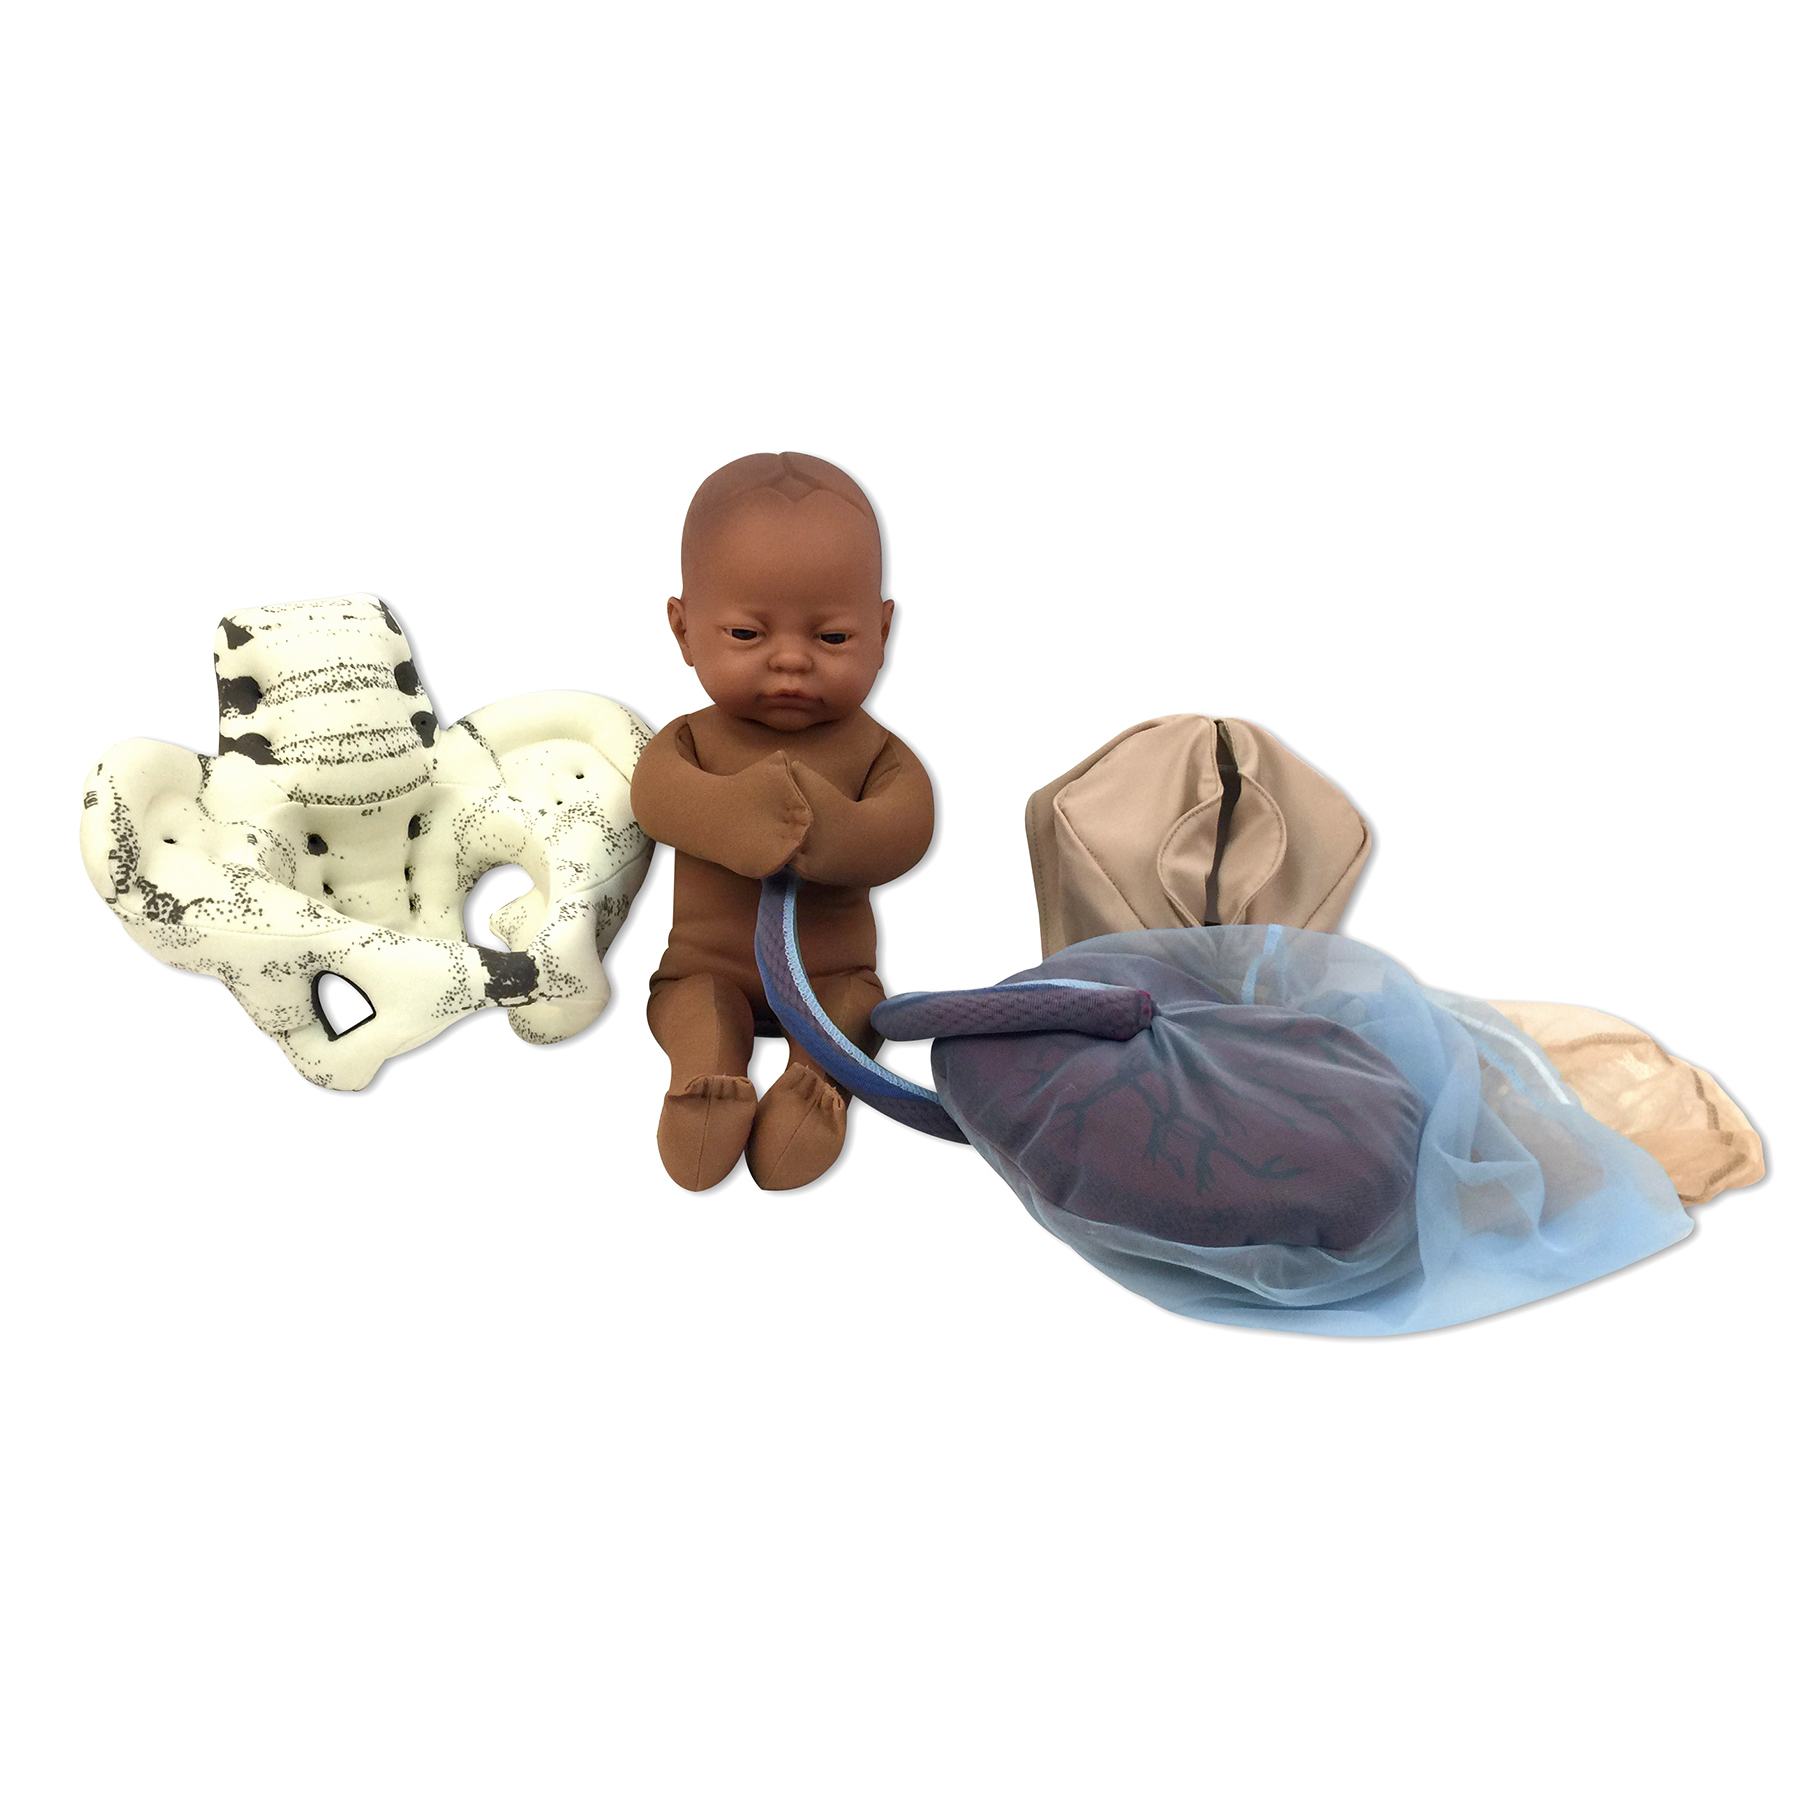 Cloth Pelvic Model Set for Childbirth Education with Fetal Model in brown skin tone, Childbirth Graphics, 78018